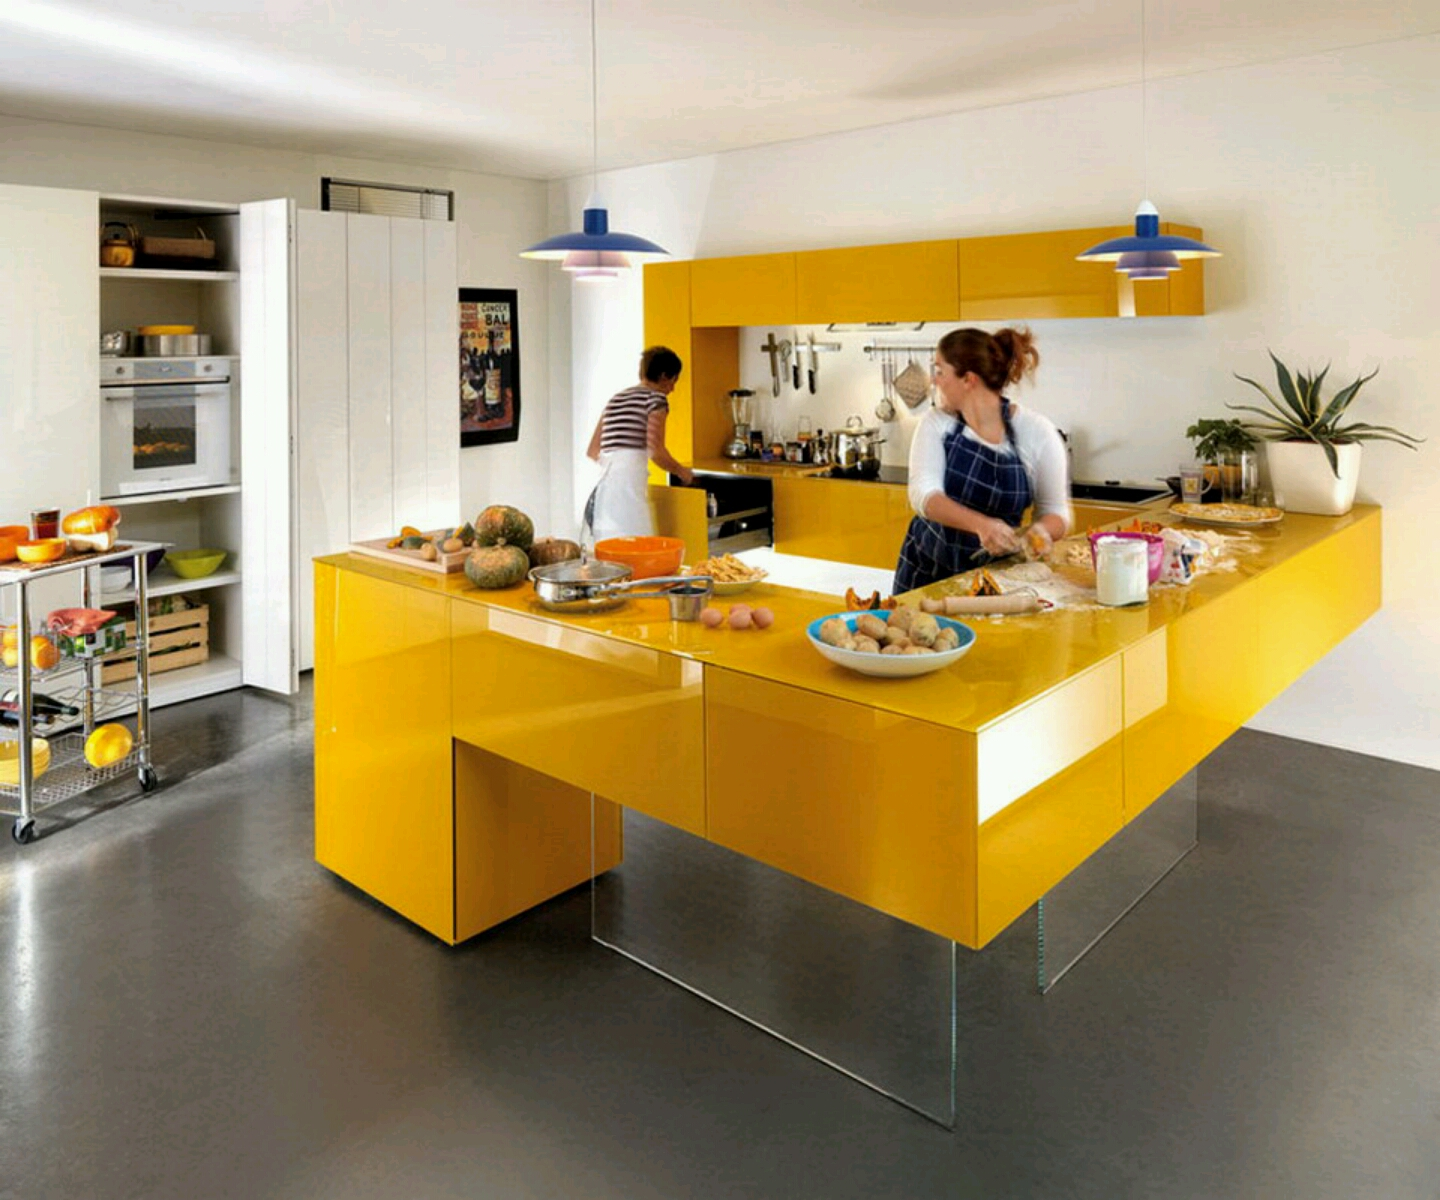 Modern kitchen cabinets designs ideas furniture gallery for Kitchen styles and designs